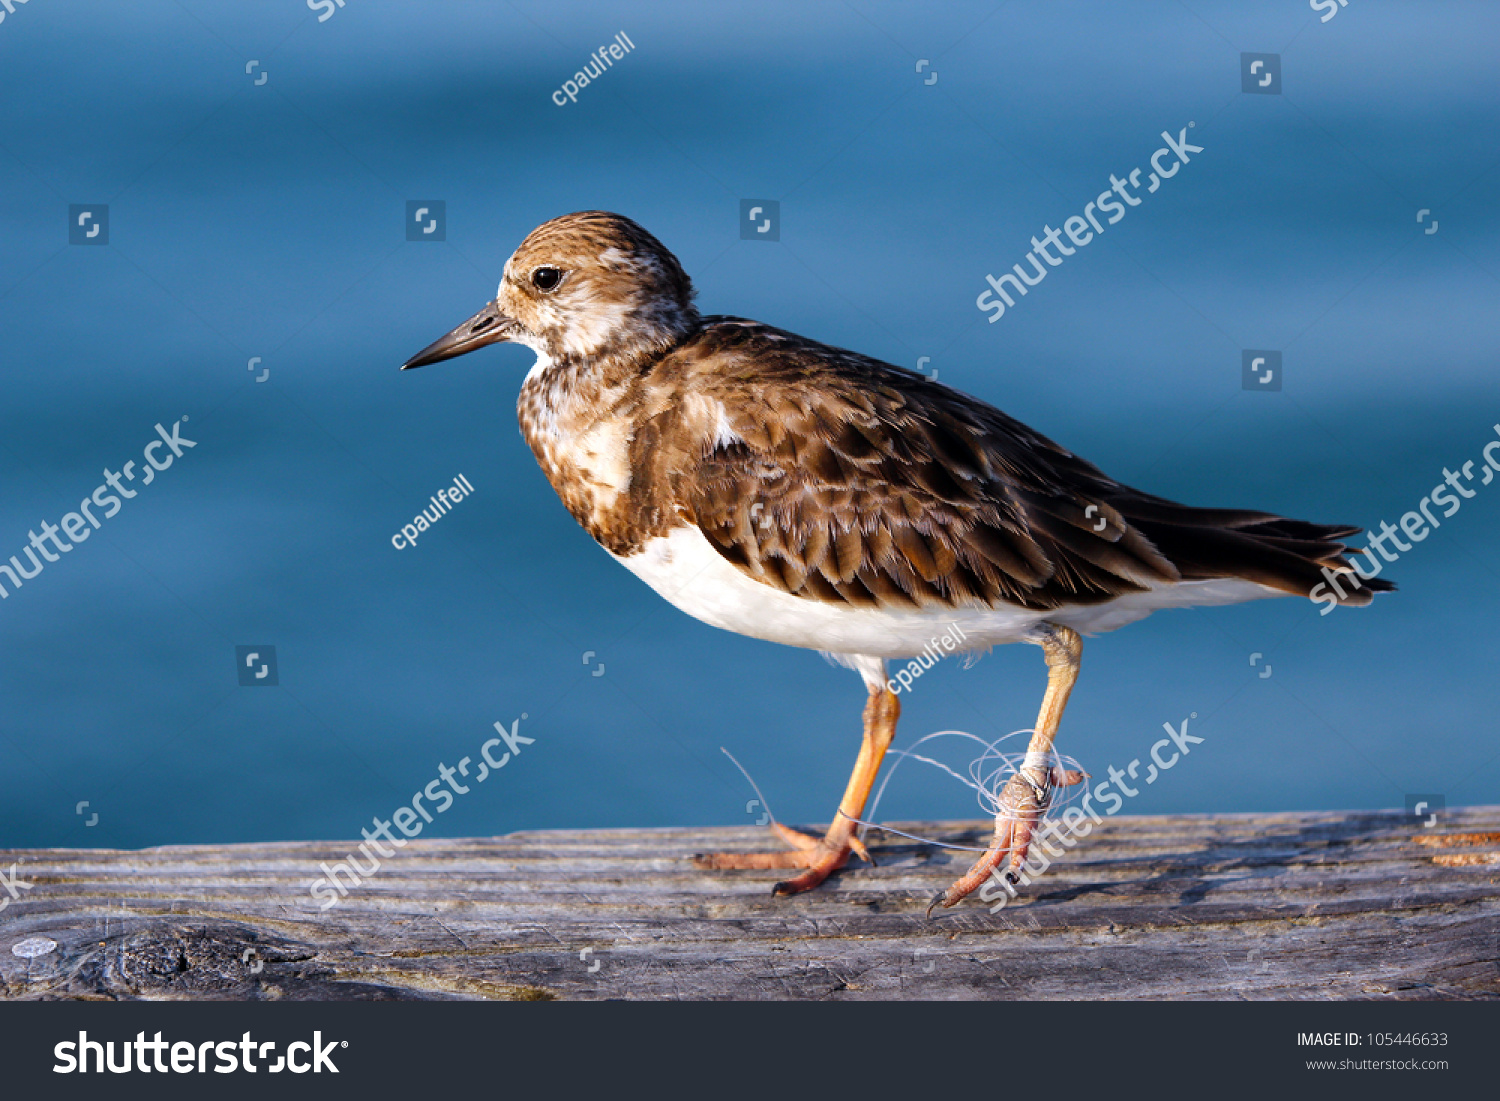 stock-photo-a-least-sandpiper-with-monof